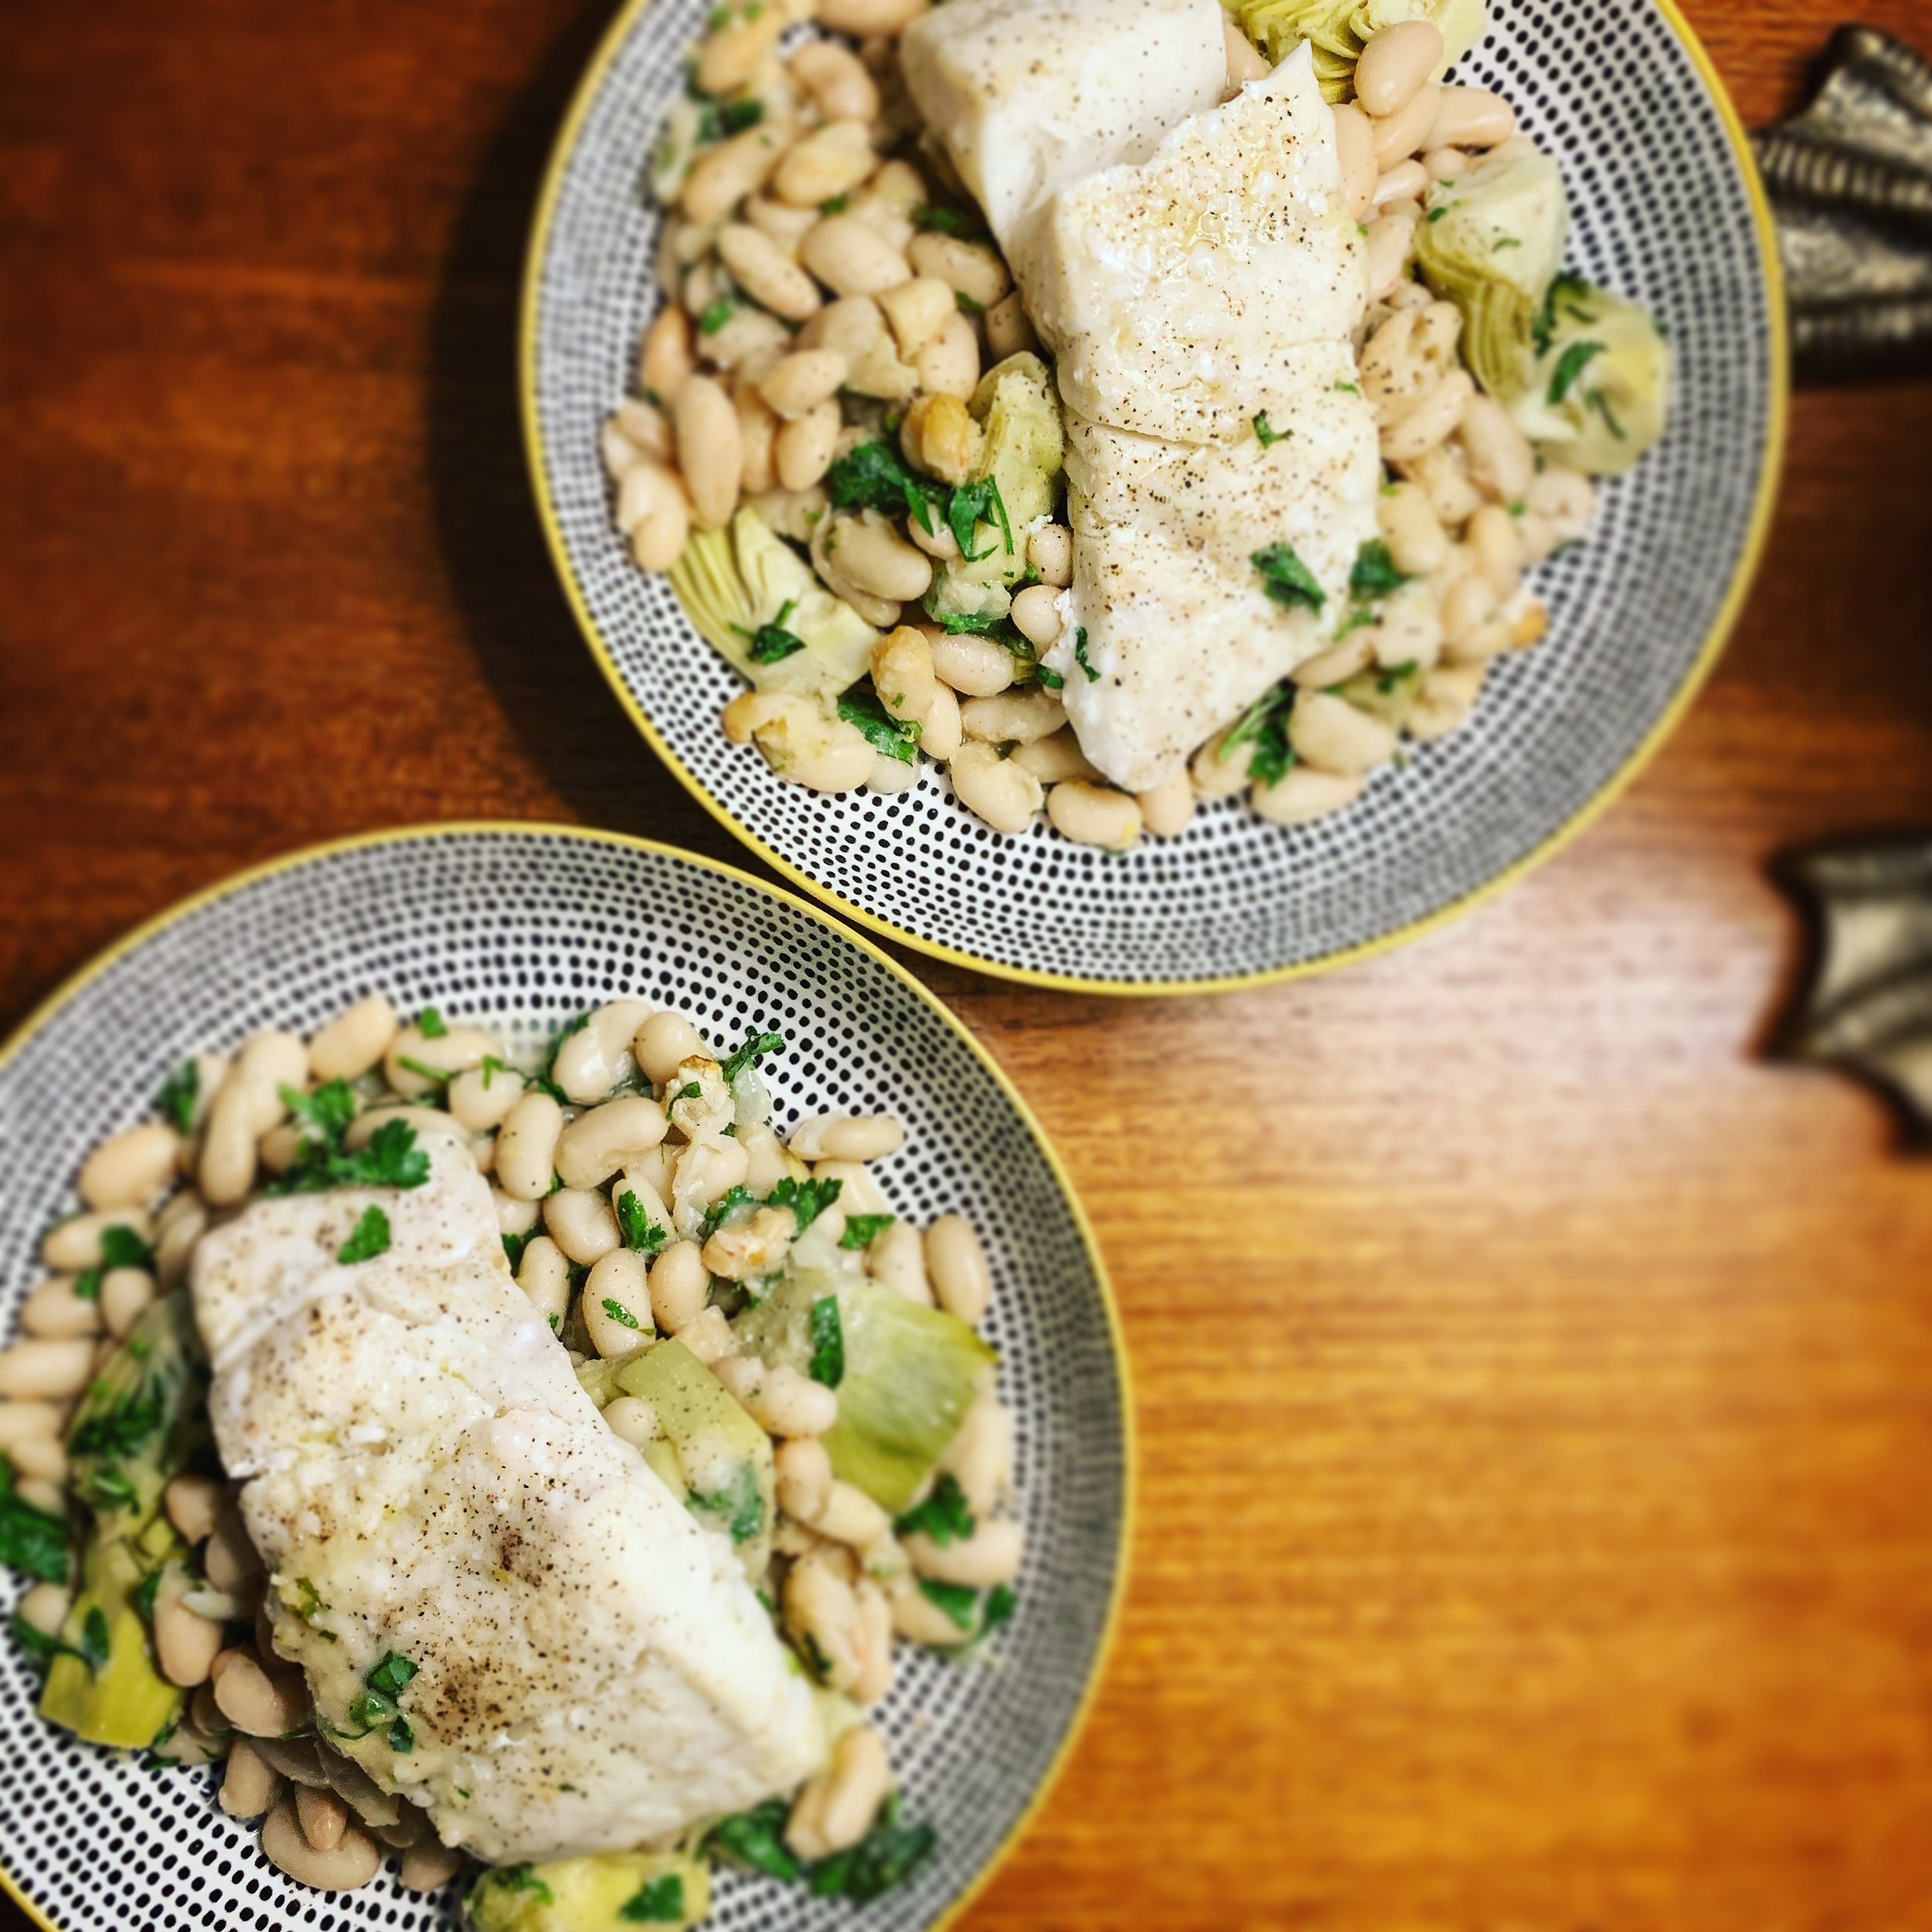 Haddock with Cannellini Beans and Artichokes